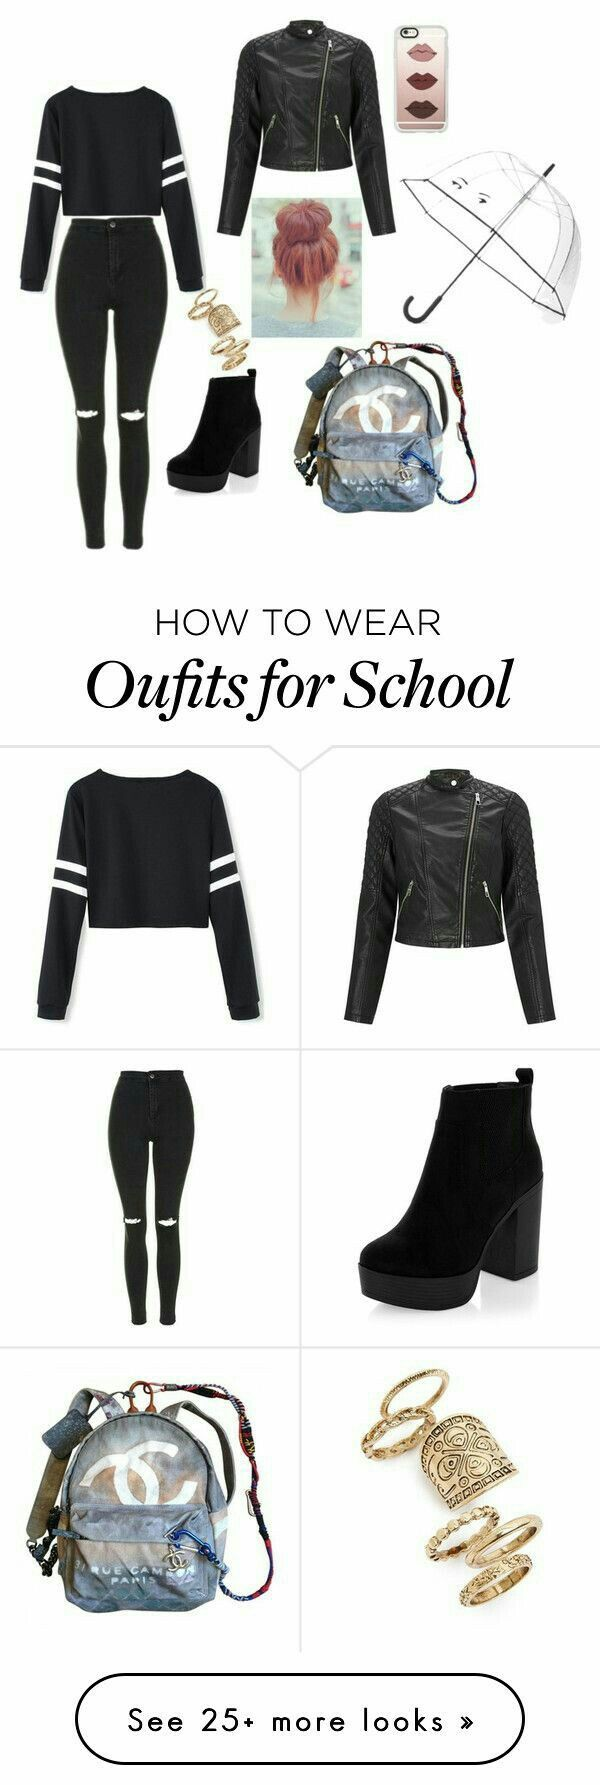 Outfits for school is very